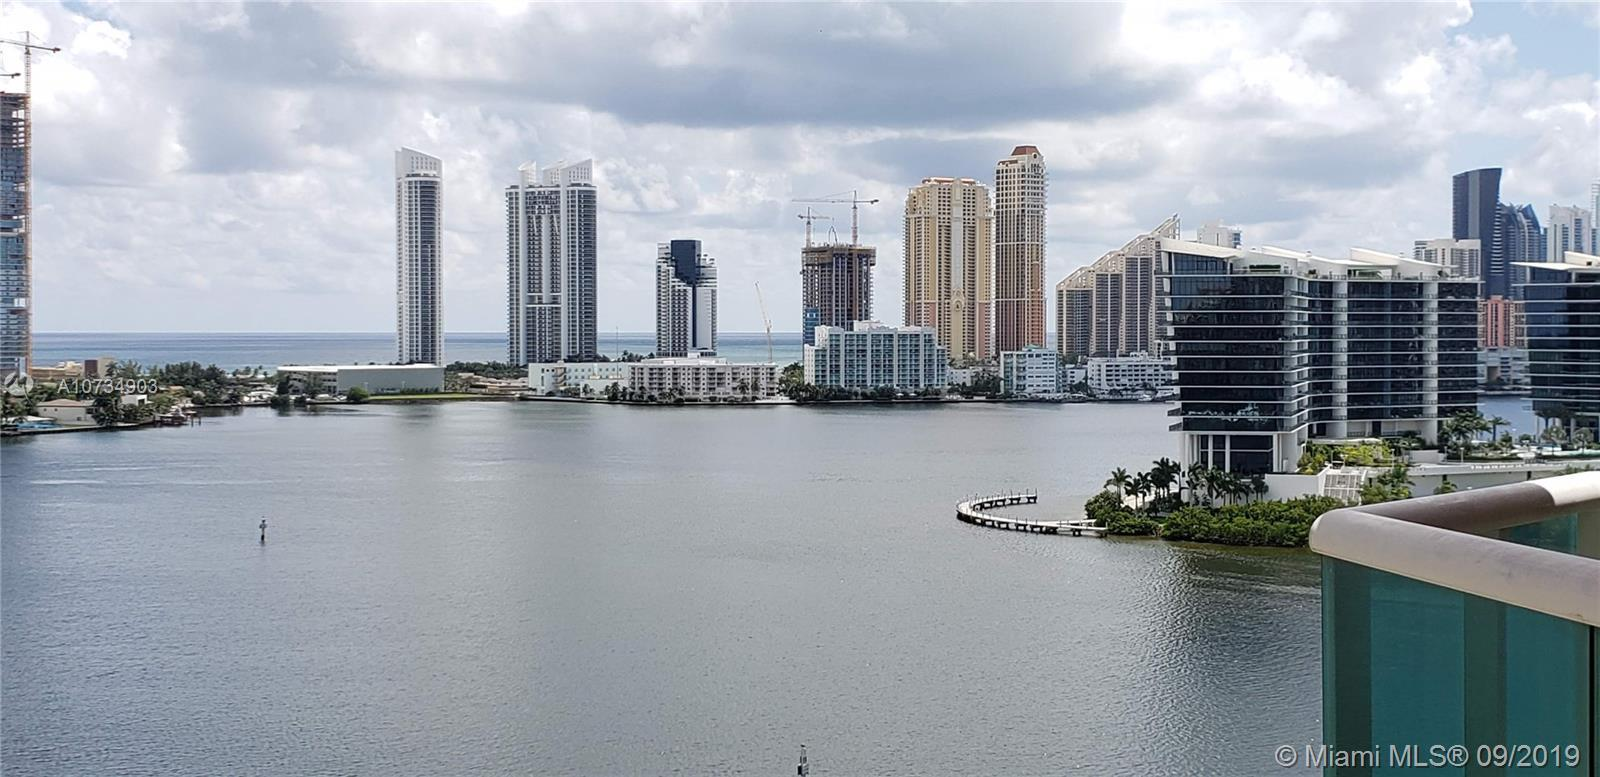 HIDDEN BAY CONDO IN AVENTURA / 2 BEDROOM, 2.5 BATHROOMS WITH FLOOR TO CEILING WINDOWS SHOWING OFF TH